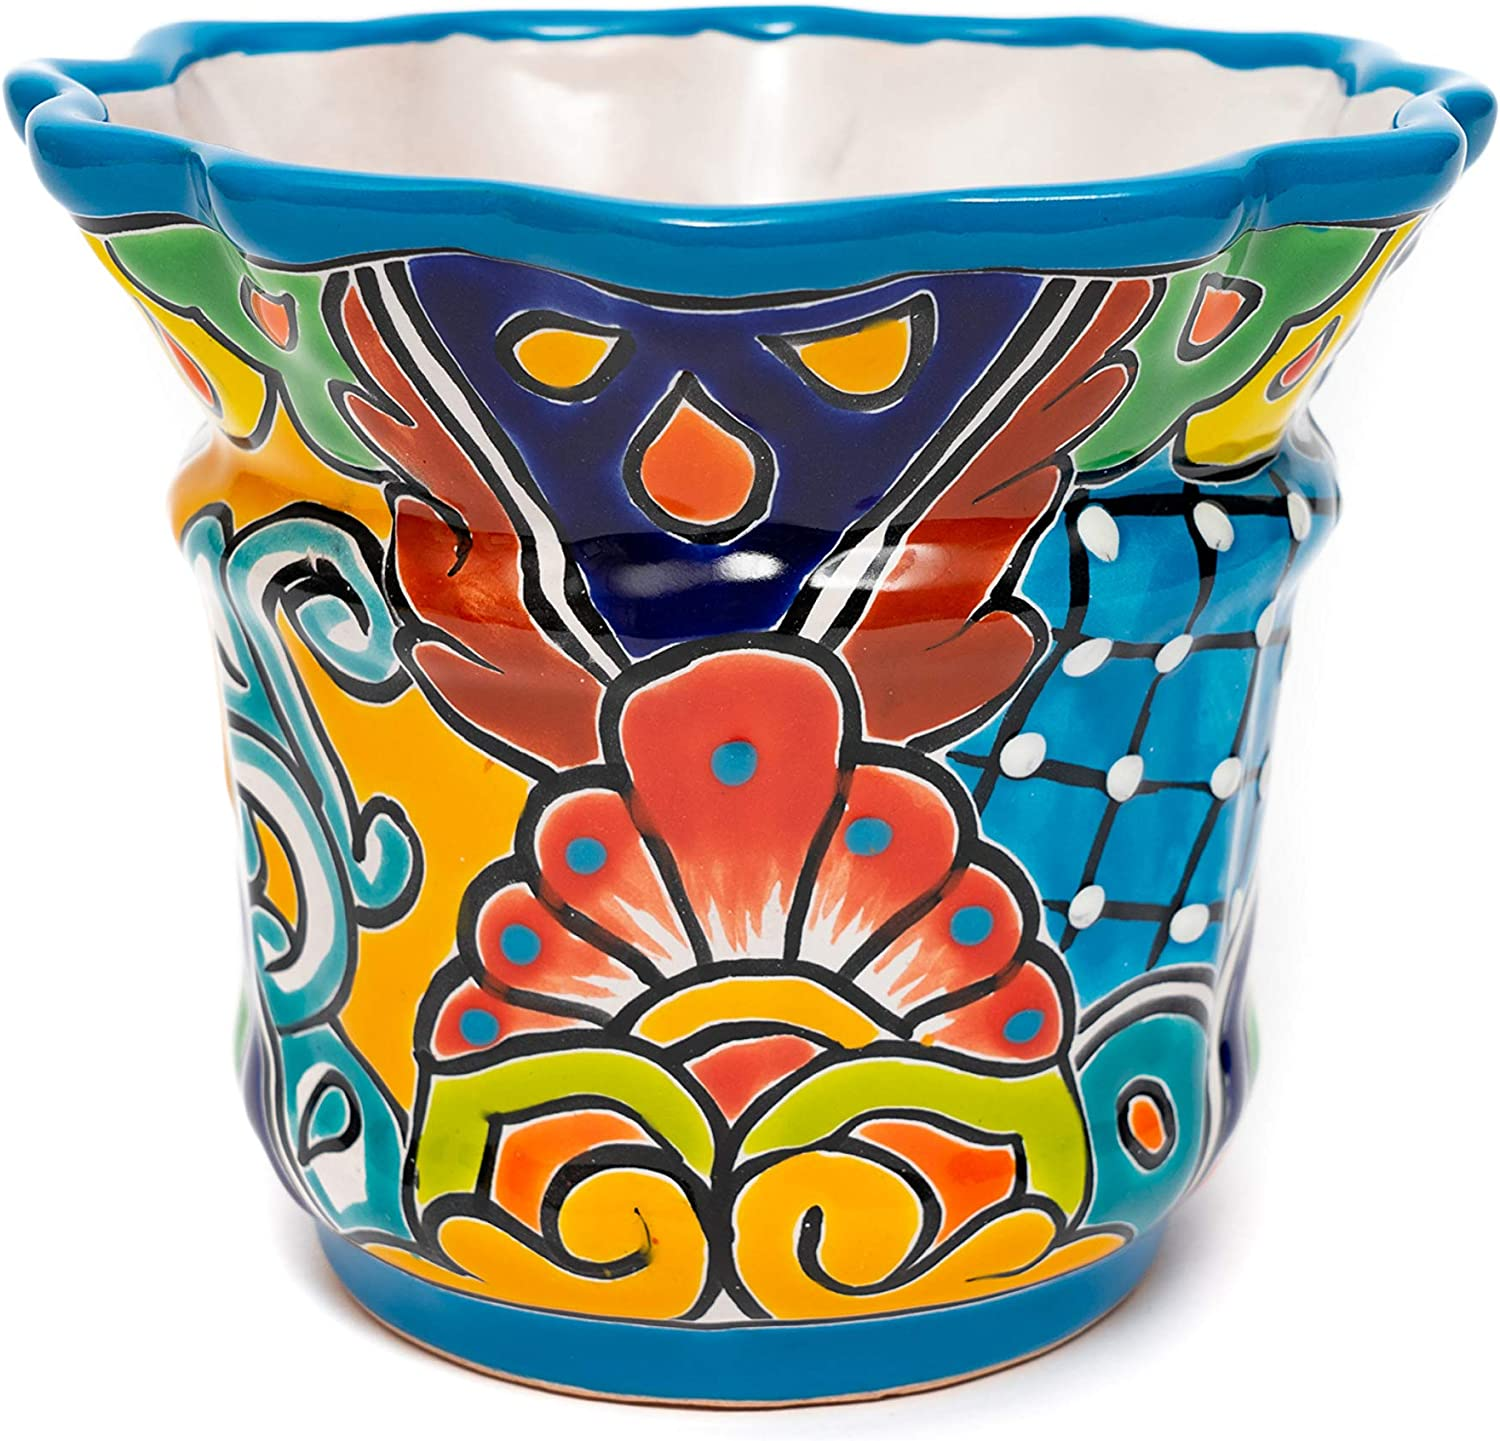 ENCHANTED TALAVERA Mexican Pottery Heavy Weight Ceramic Scalloped Flower Pot Plant Pot Succulent Planter Garden Decor Turquoise (Small (7.5x7))